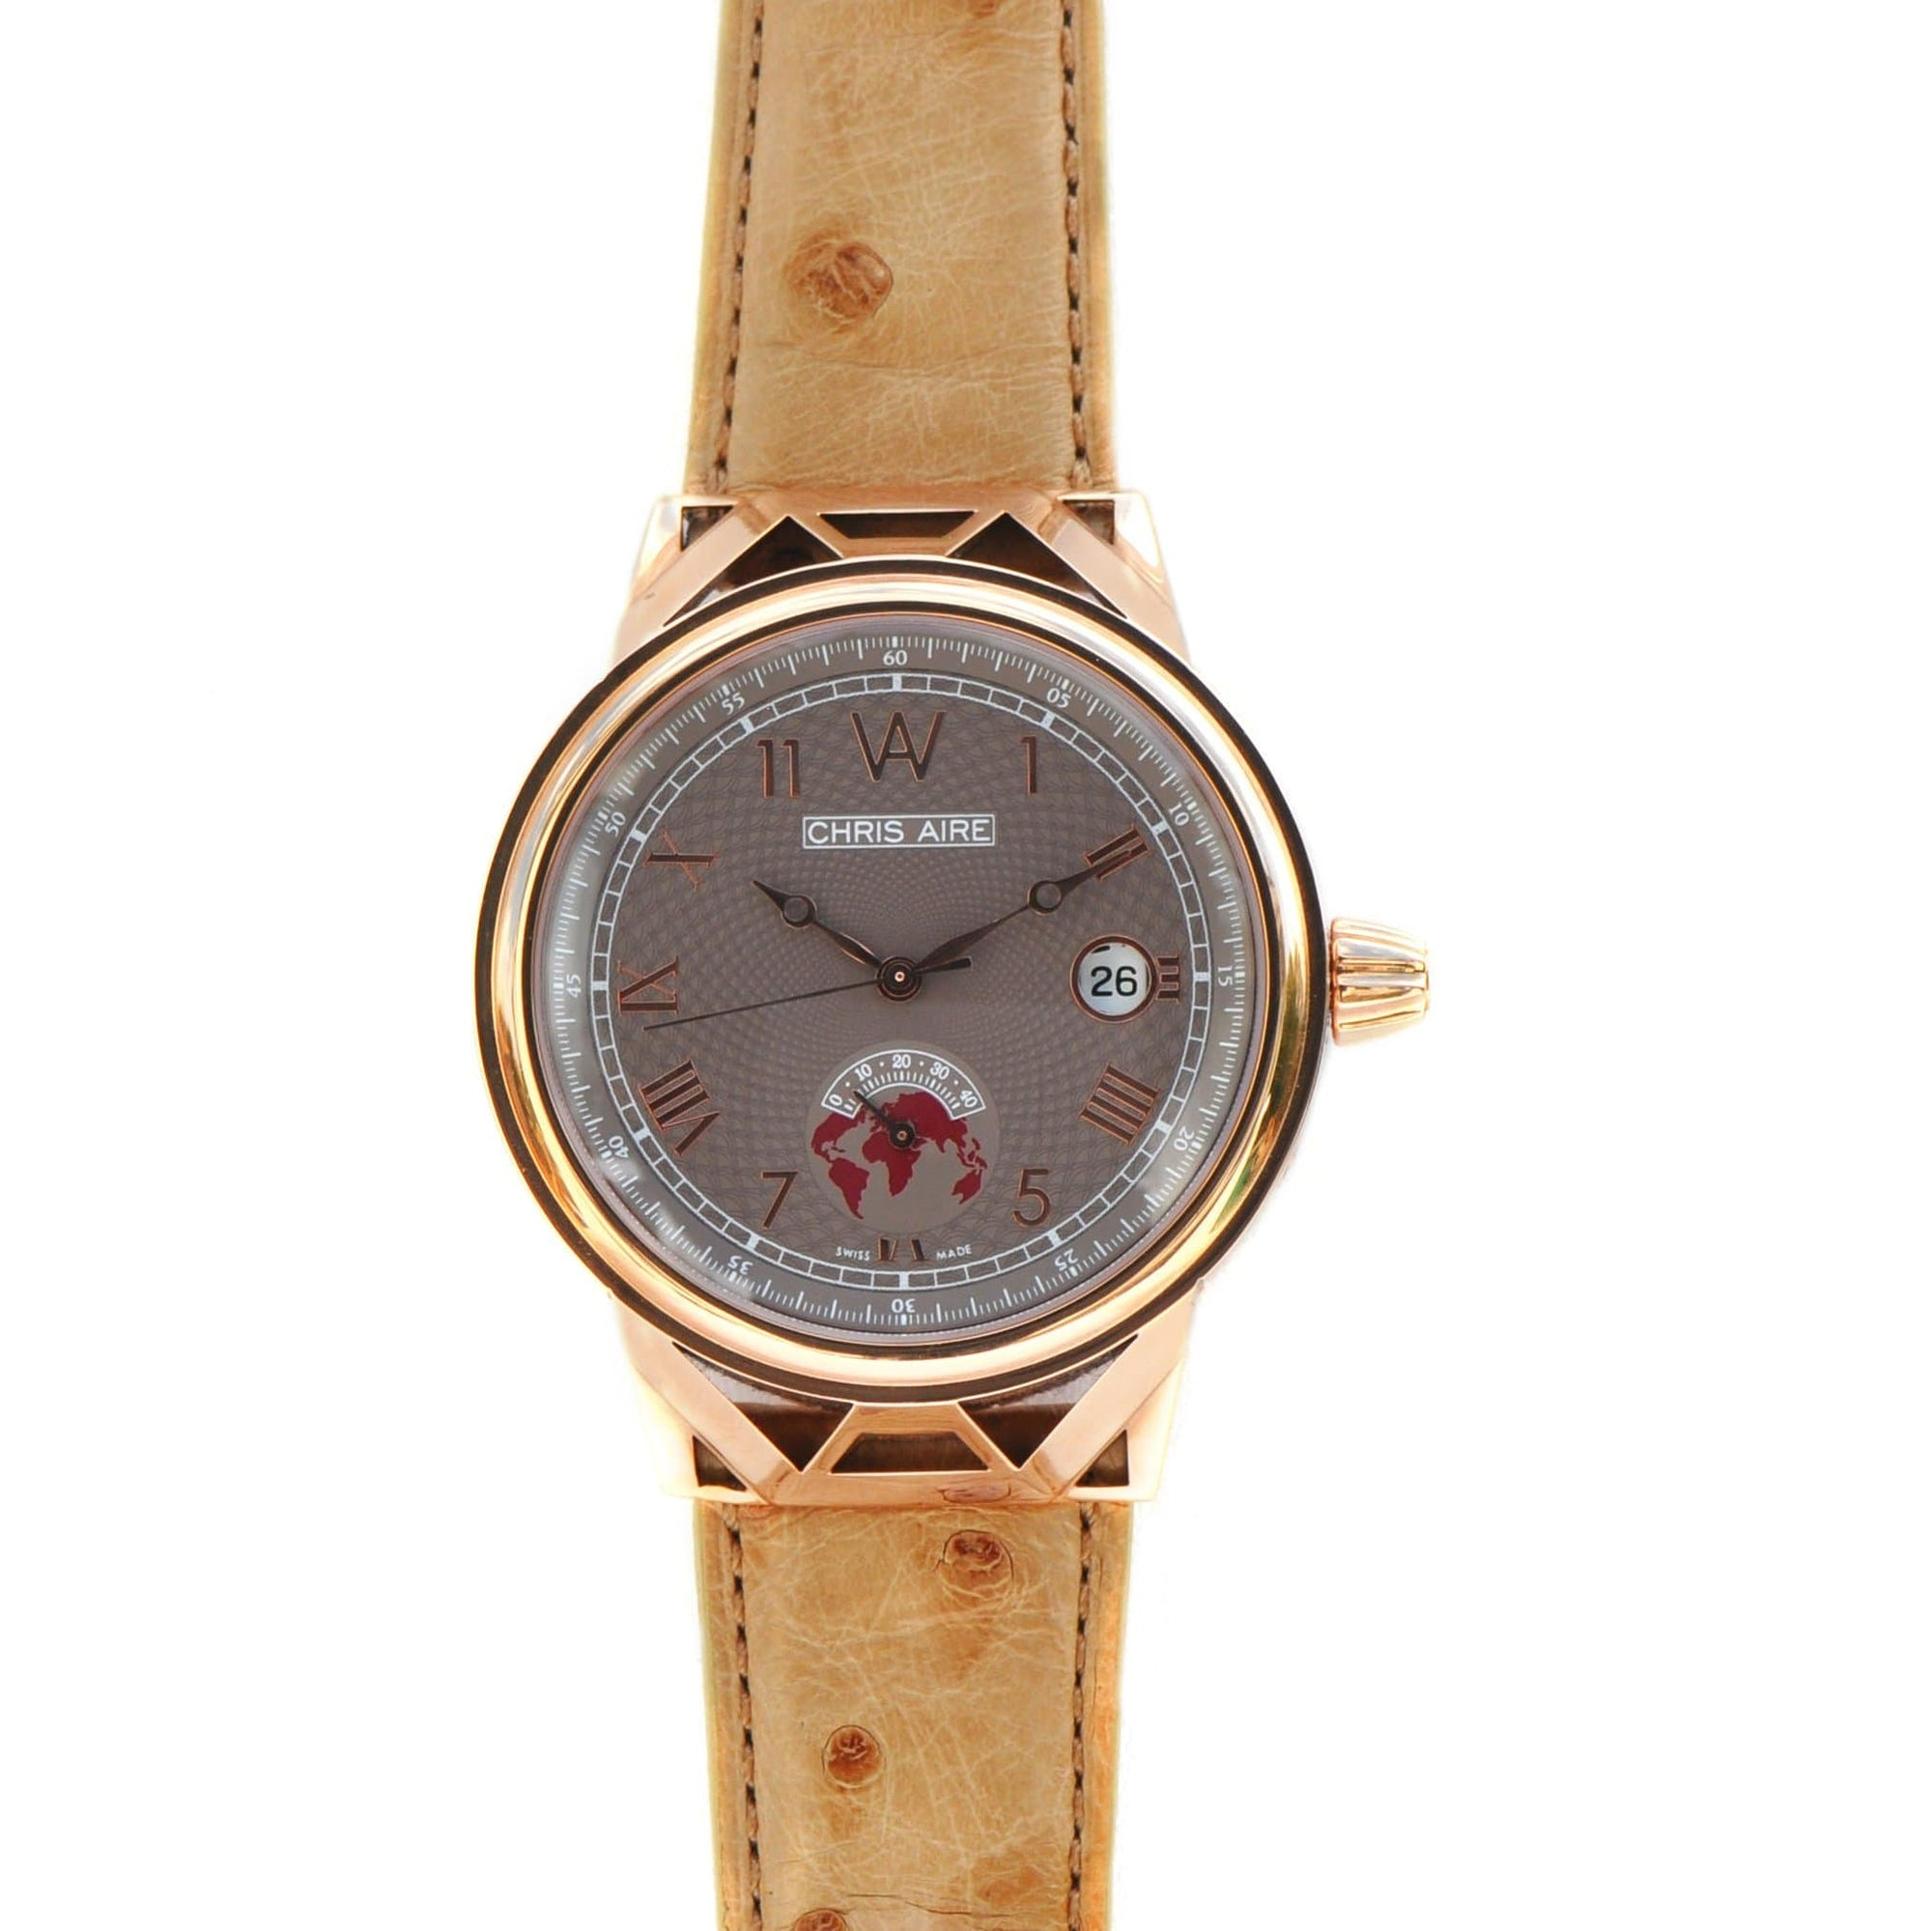 Aire Capitol Hill Watch Swiss Made 18 Karat Solid Gold Power Reserve Luxury Rare Watch - Red Gold®